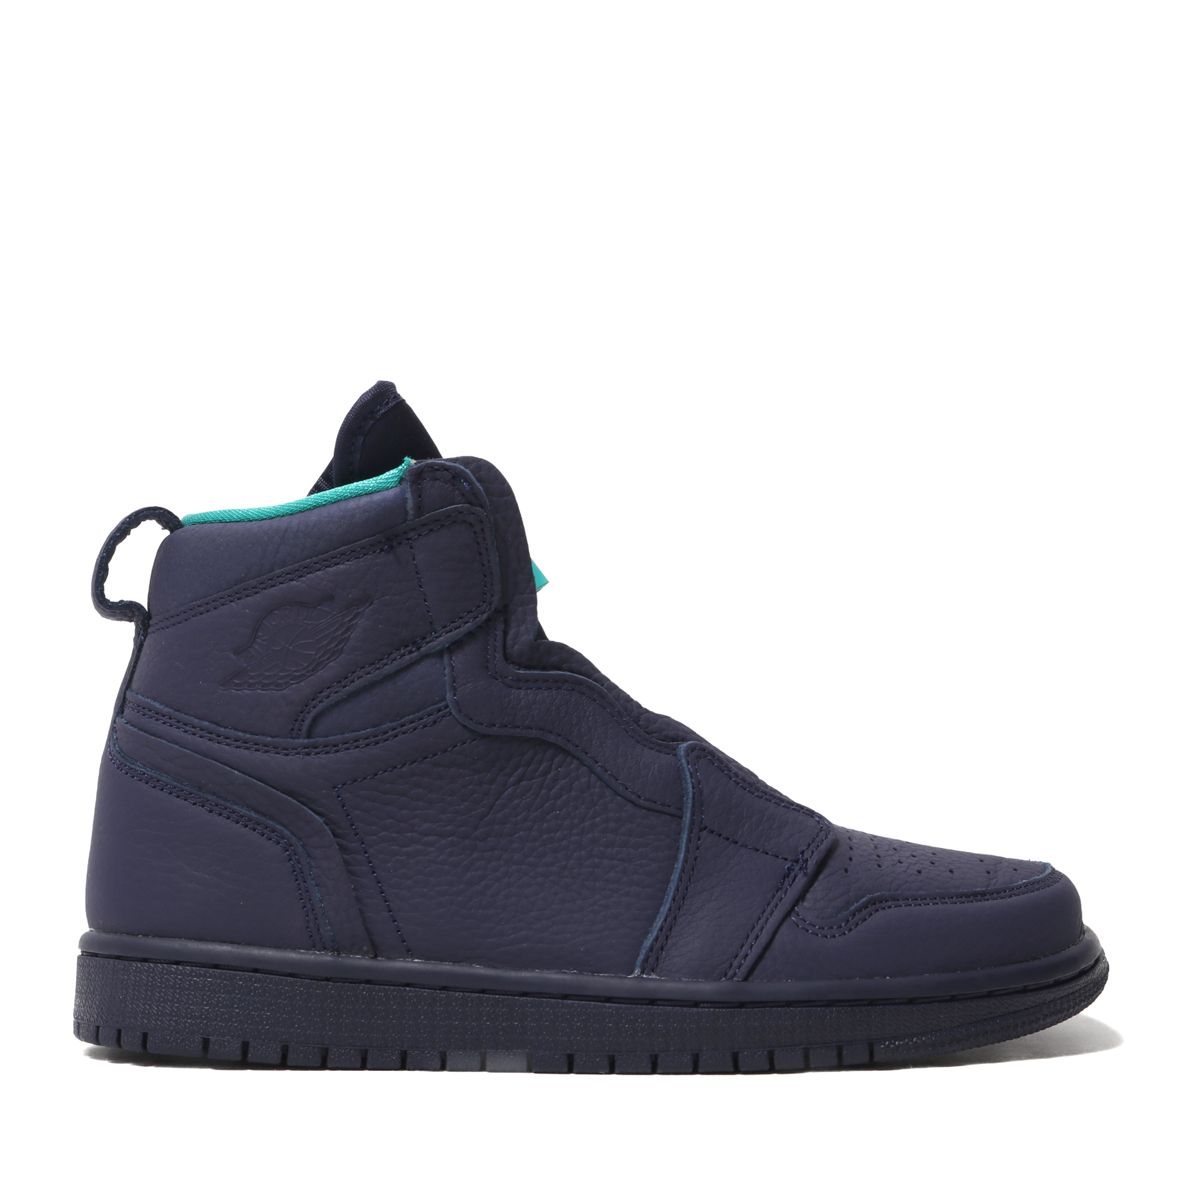 newest 070f4 cfe26 NIKE WMNS AIR JORDAN 1 HIGH ZIP (BLACKENED BLUE NEPTUNE GREEN-WHITE) ...